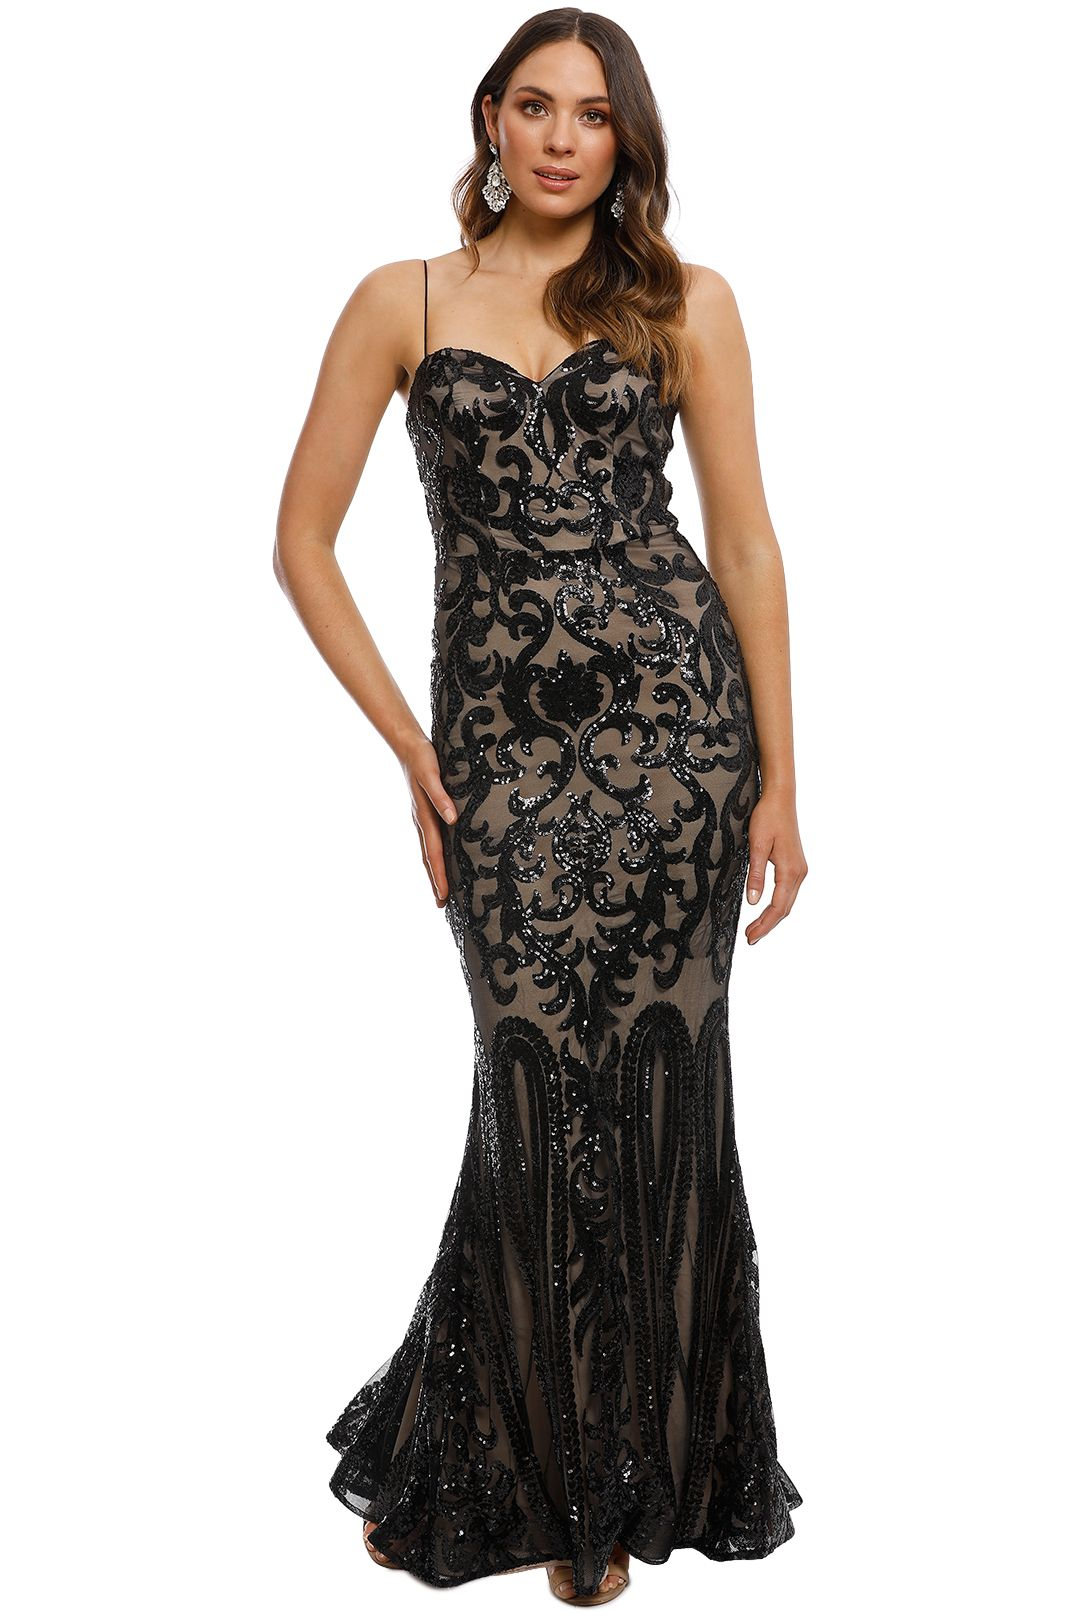 Tinaholy - Odessa Sequin Gown - Black - Front